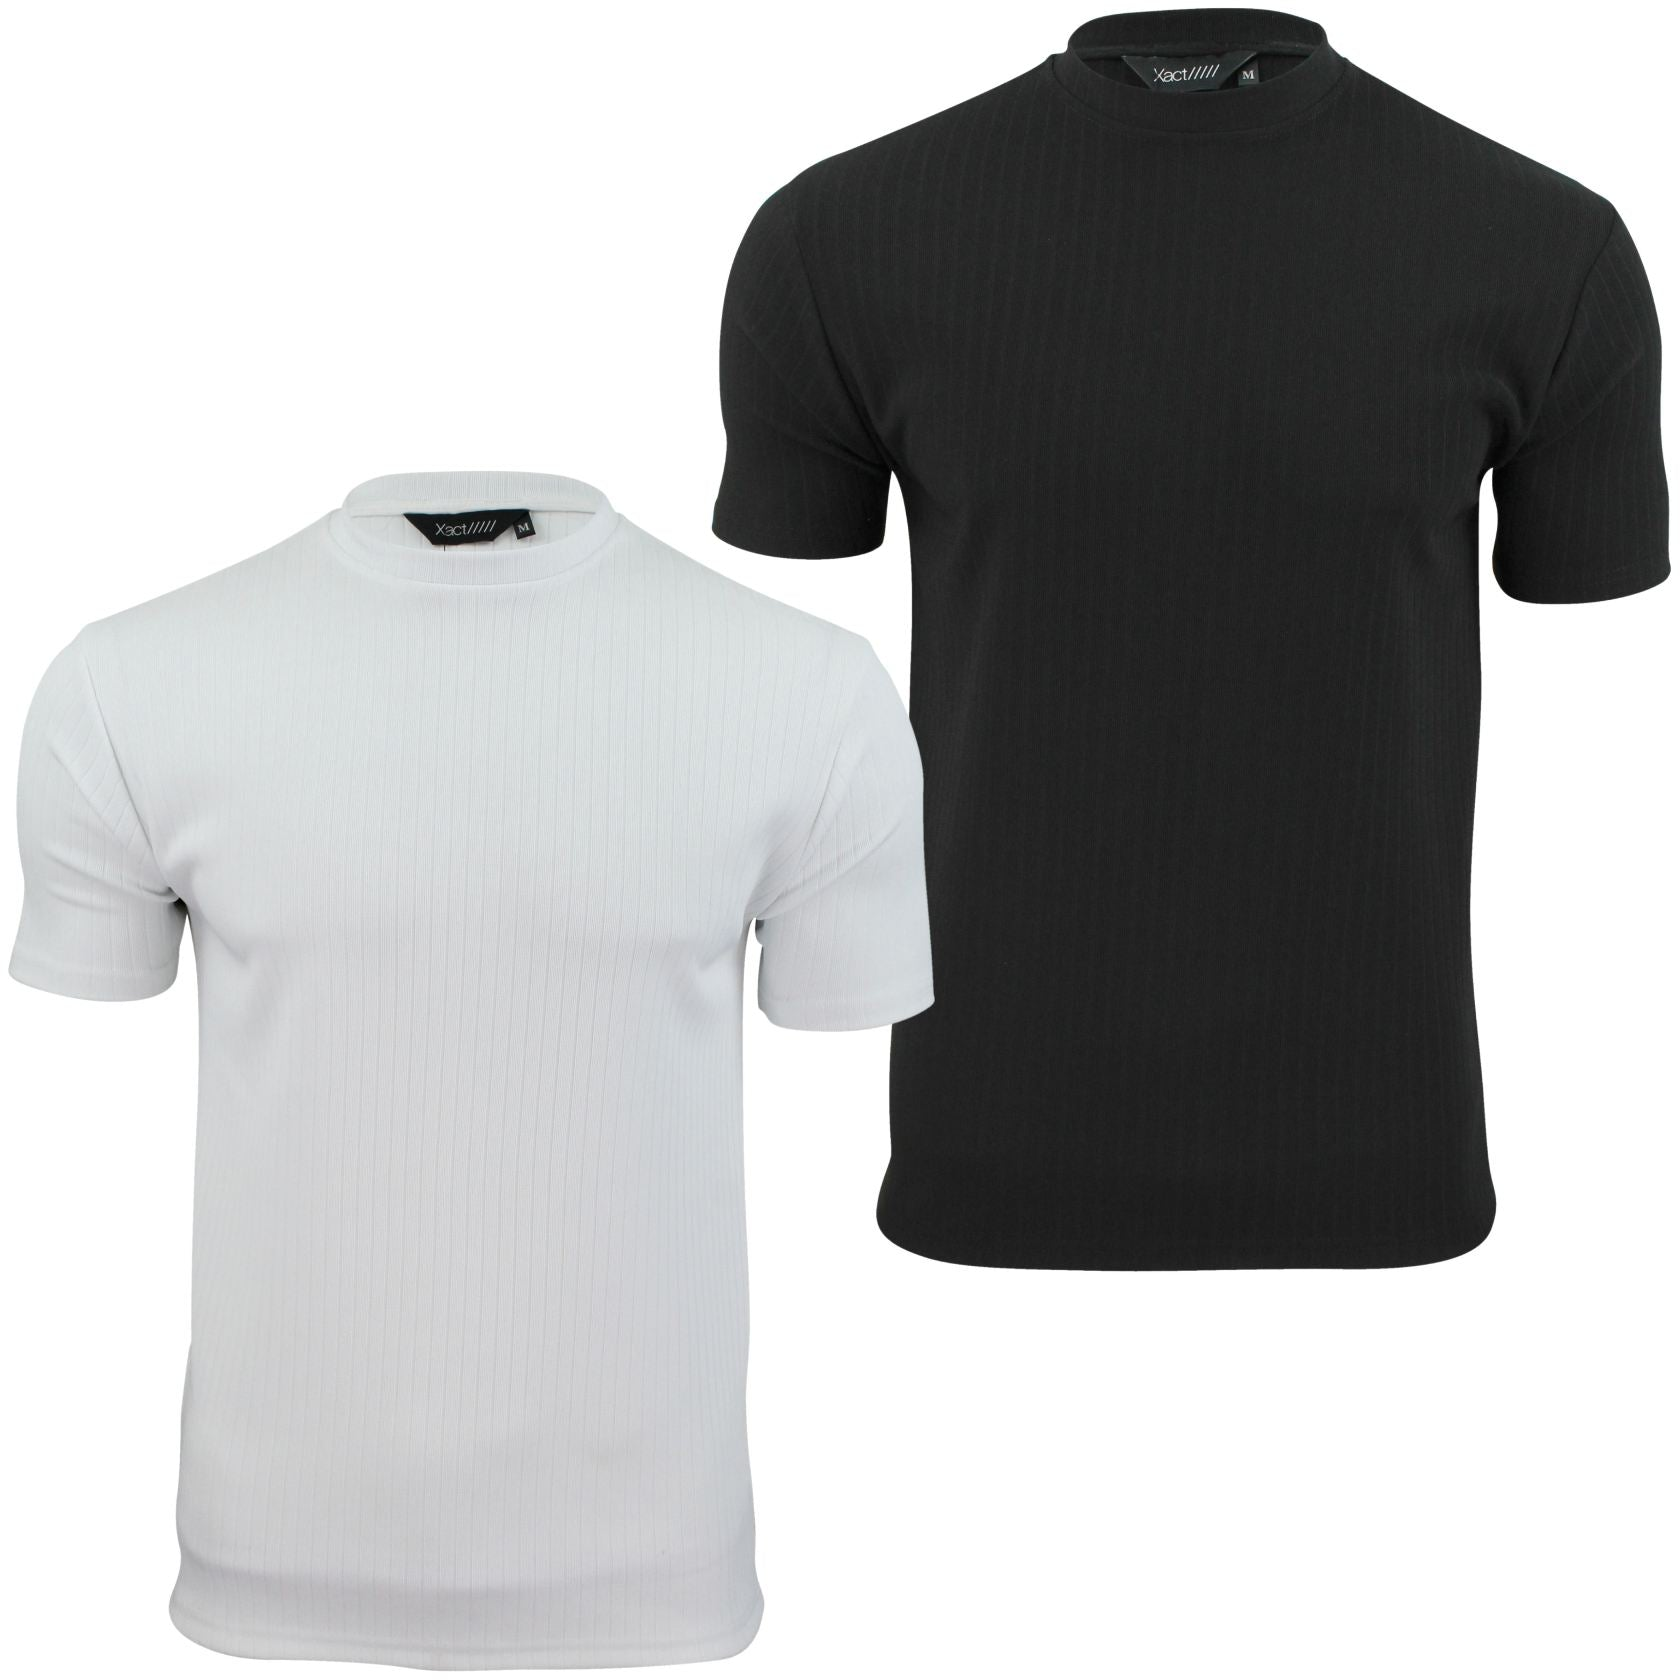 Mens Rib T - Shirt by Xact Clothing Crew Neck Slim Gym Muscle Fit-Main Image